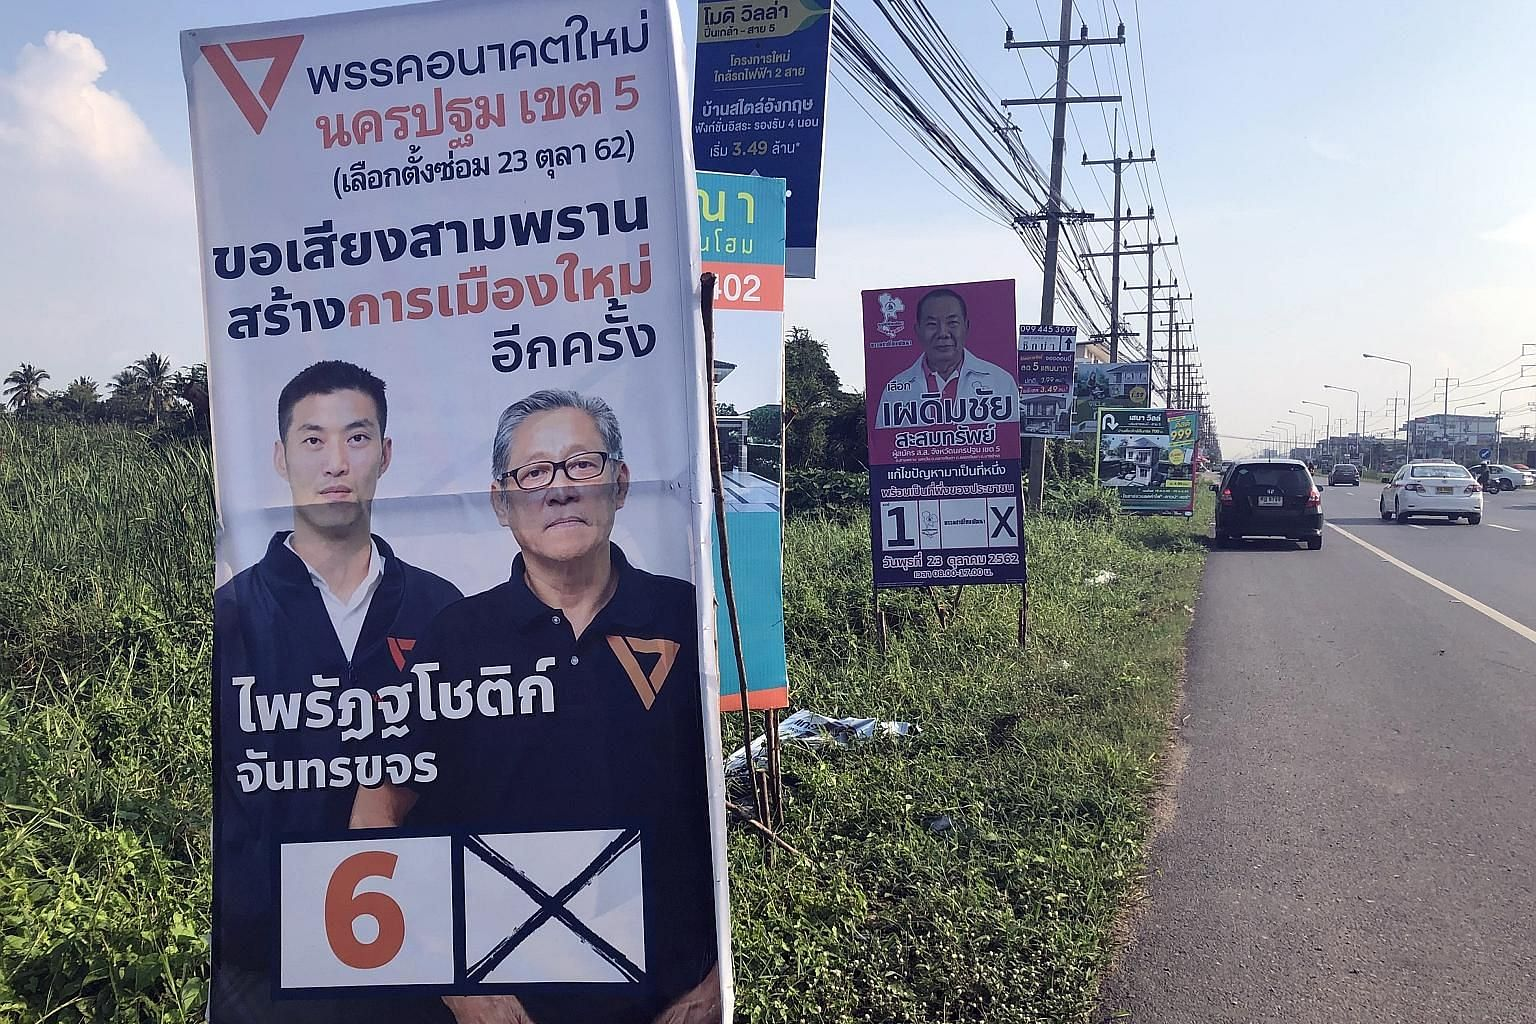 Campaign posters for the Future Forward Party (left) and Chart Thai Pattana Party in Nakhon Pathom province. Future Forward's Chumpita Juntarakajorn, who won in March, resigned for health reasons.